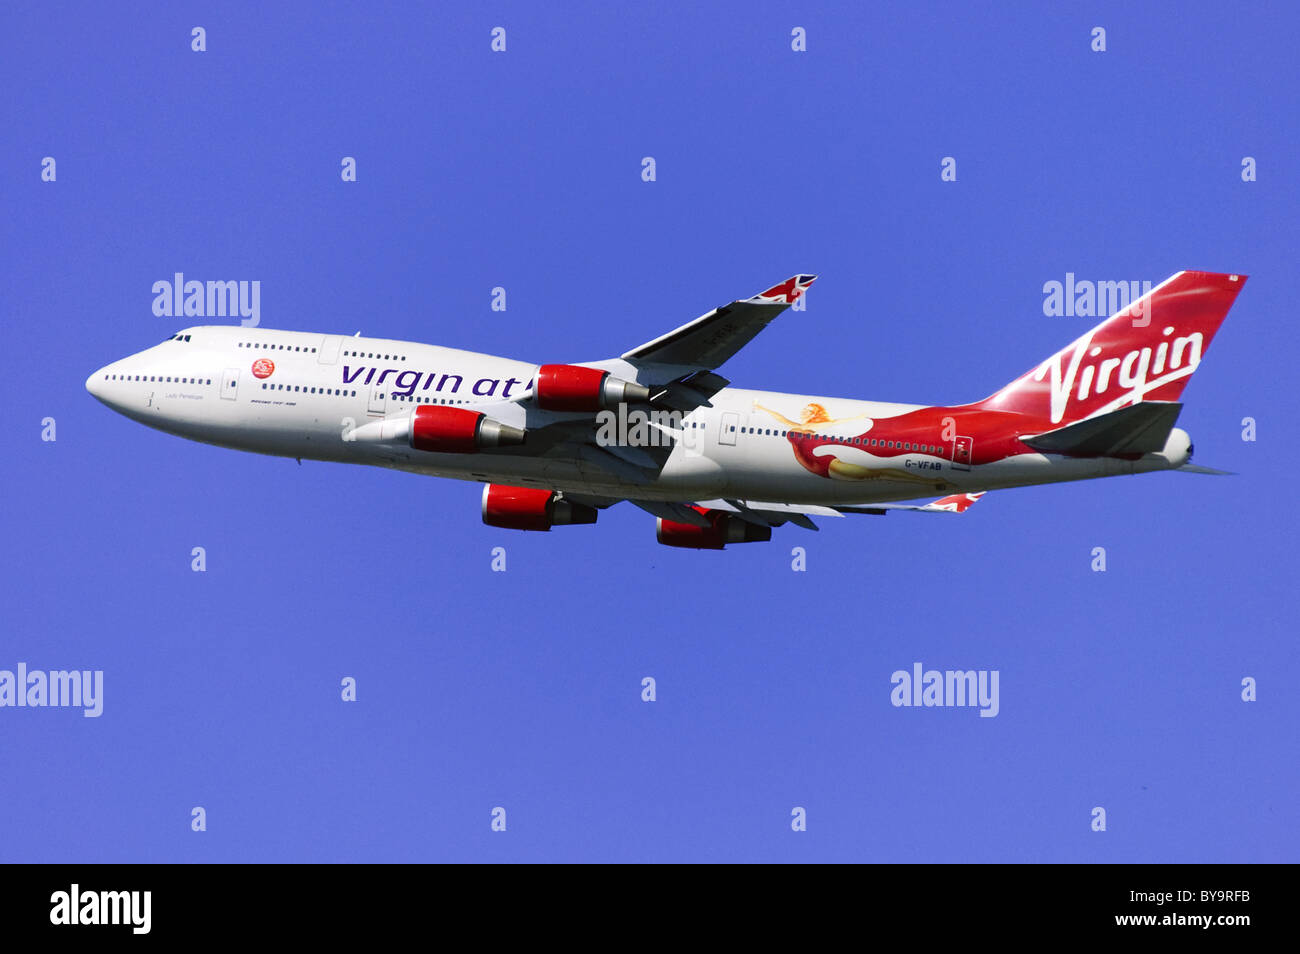 Boeing 747 operated by Virgin Atlantic climbing out after take off from London Heathrow Airport - Stock Image